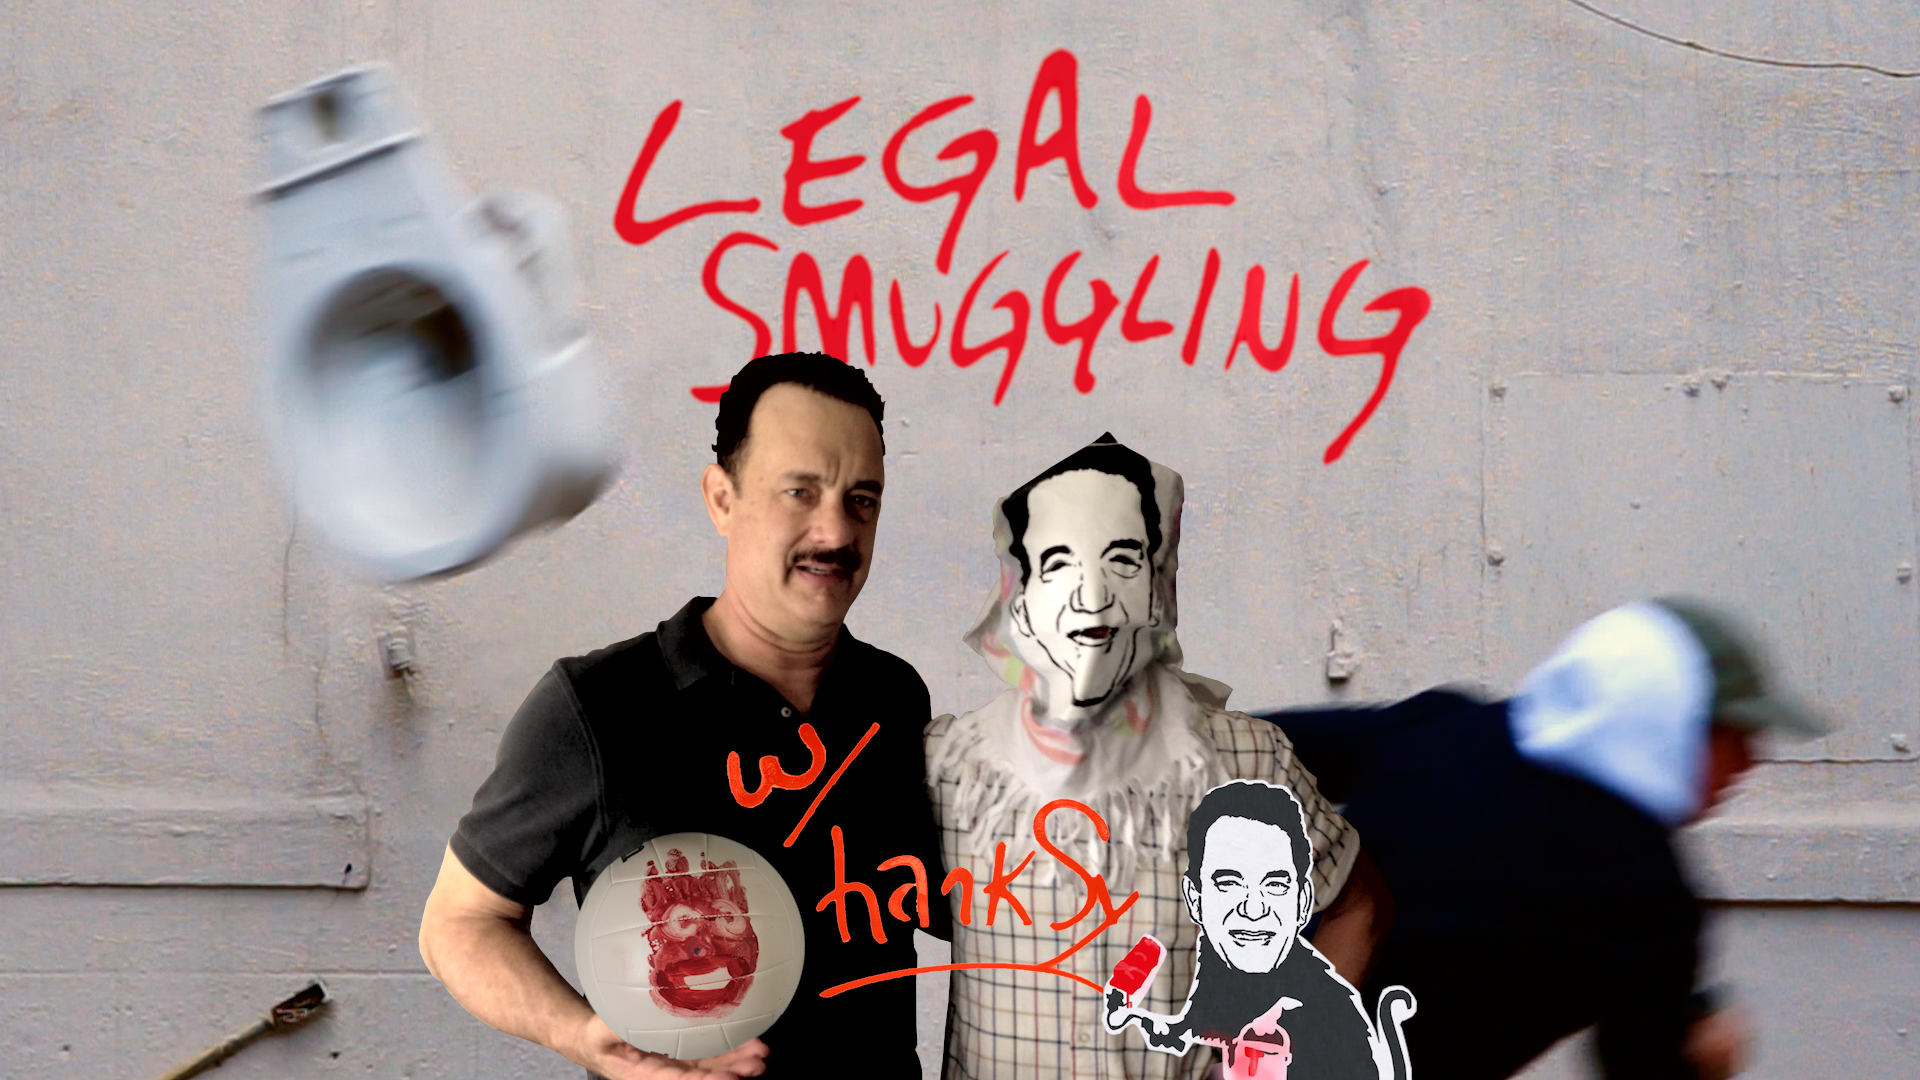 Legal Smuggling with Adam Lucas (Hanksy).png